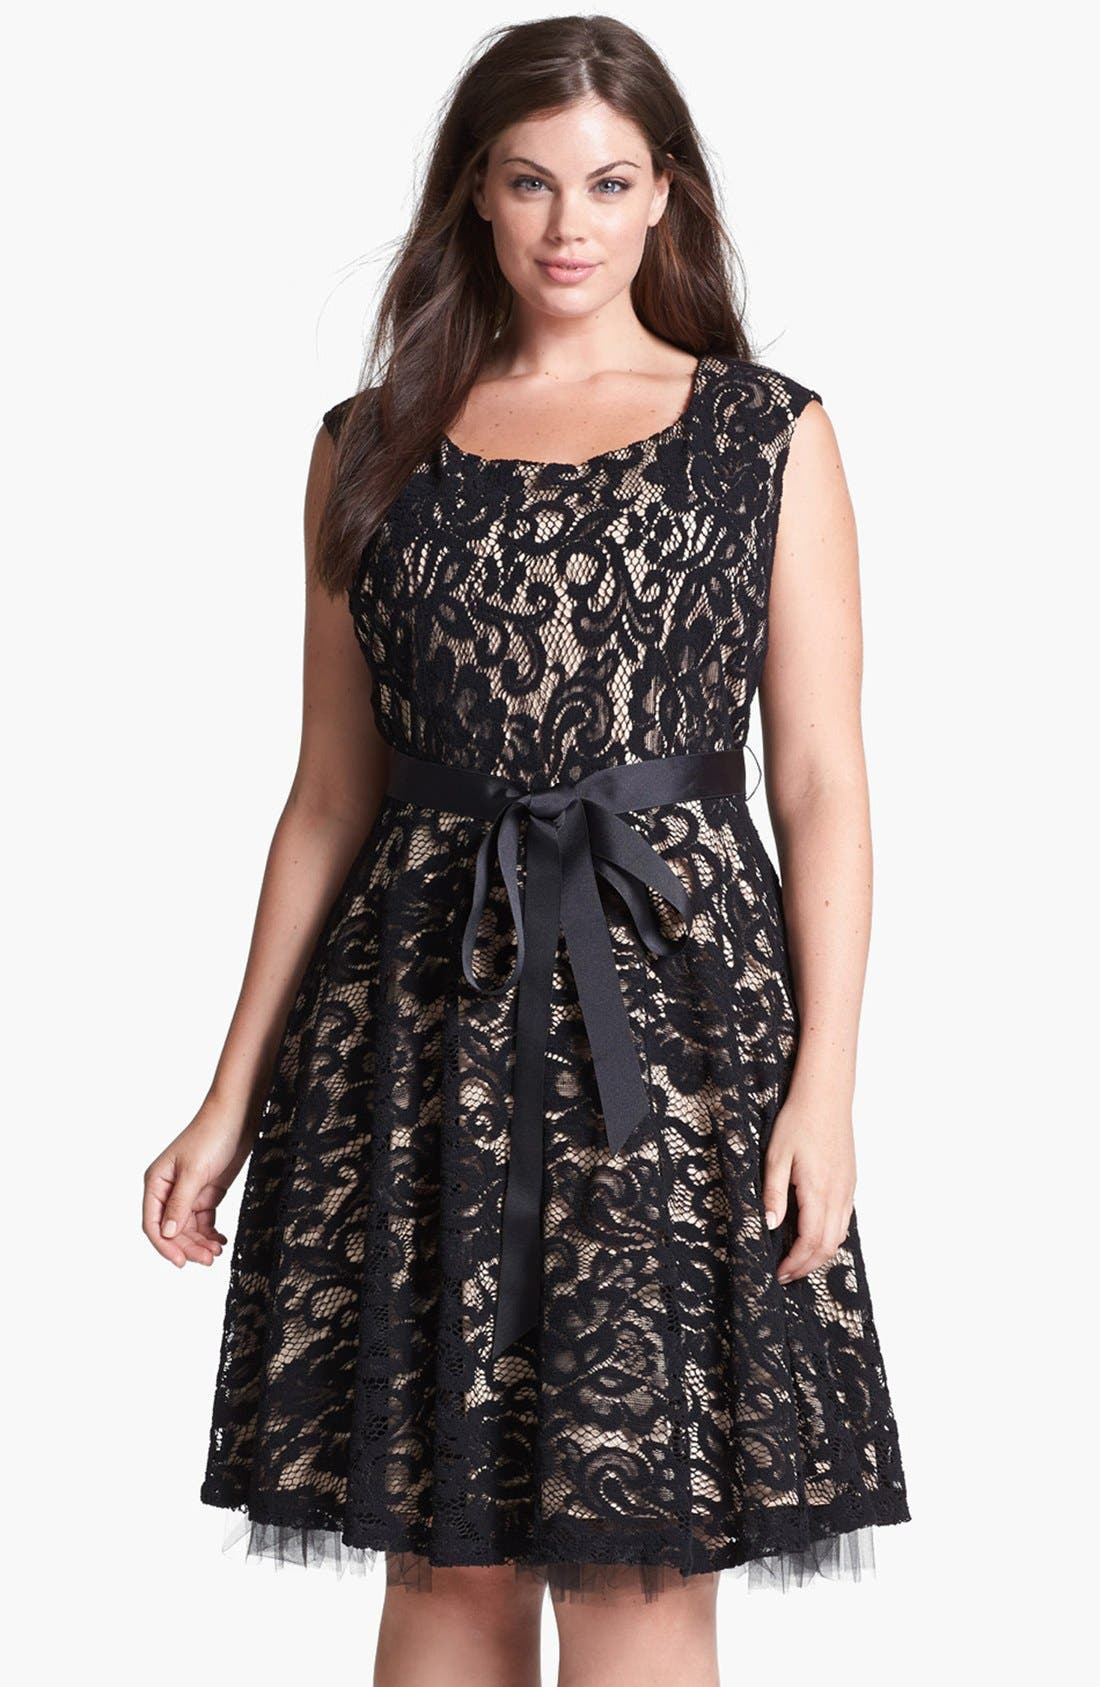 Alternate Image 1 Selected - Betsy & Adam Lace Fit & Flare Dress (Plus Size)